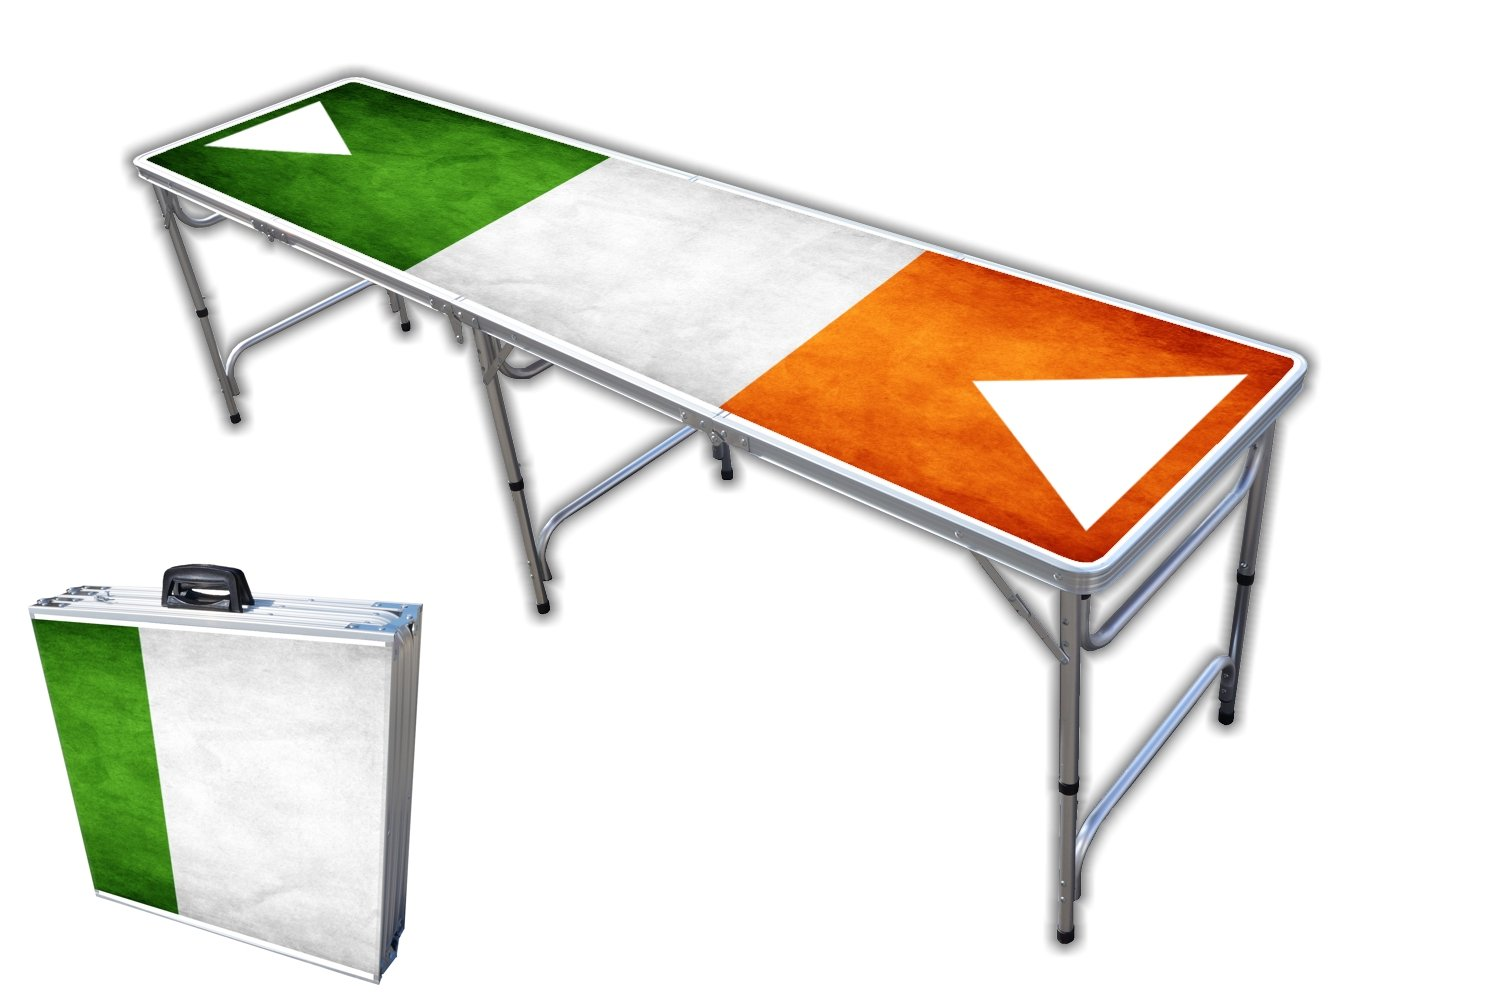 8-Foot Professional Beer Pong Table - Shenanigans Graphic by PartyPongTables.com